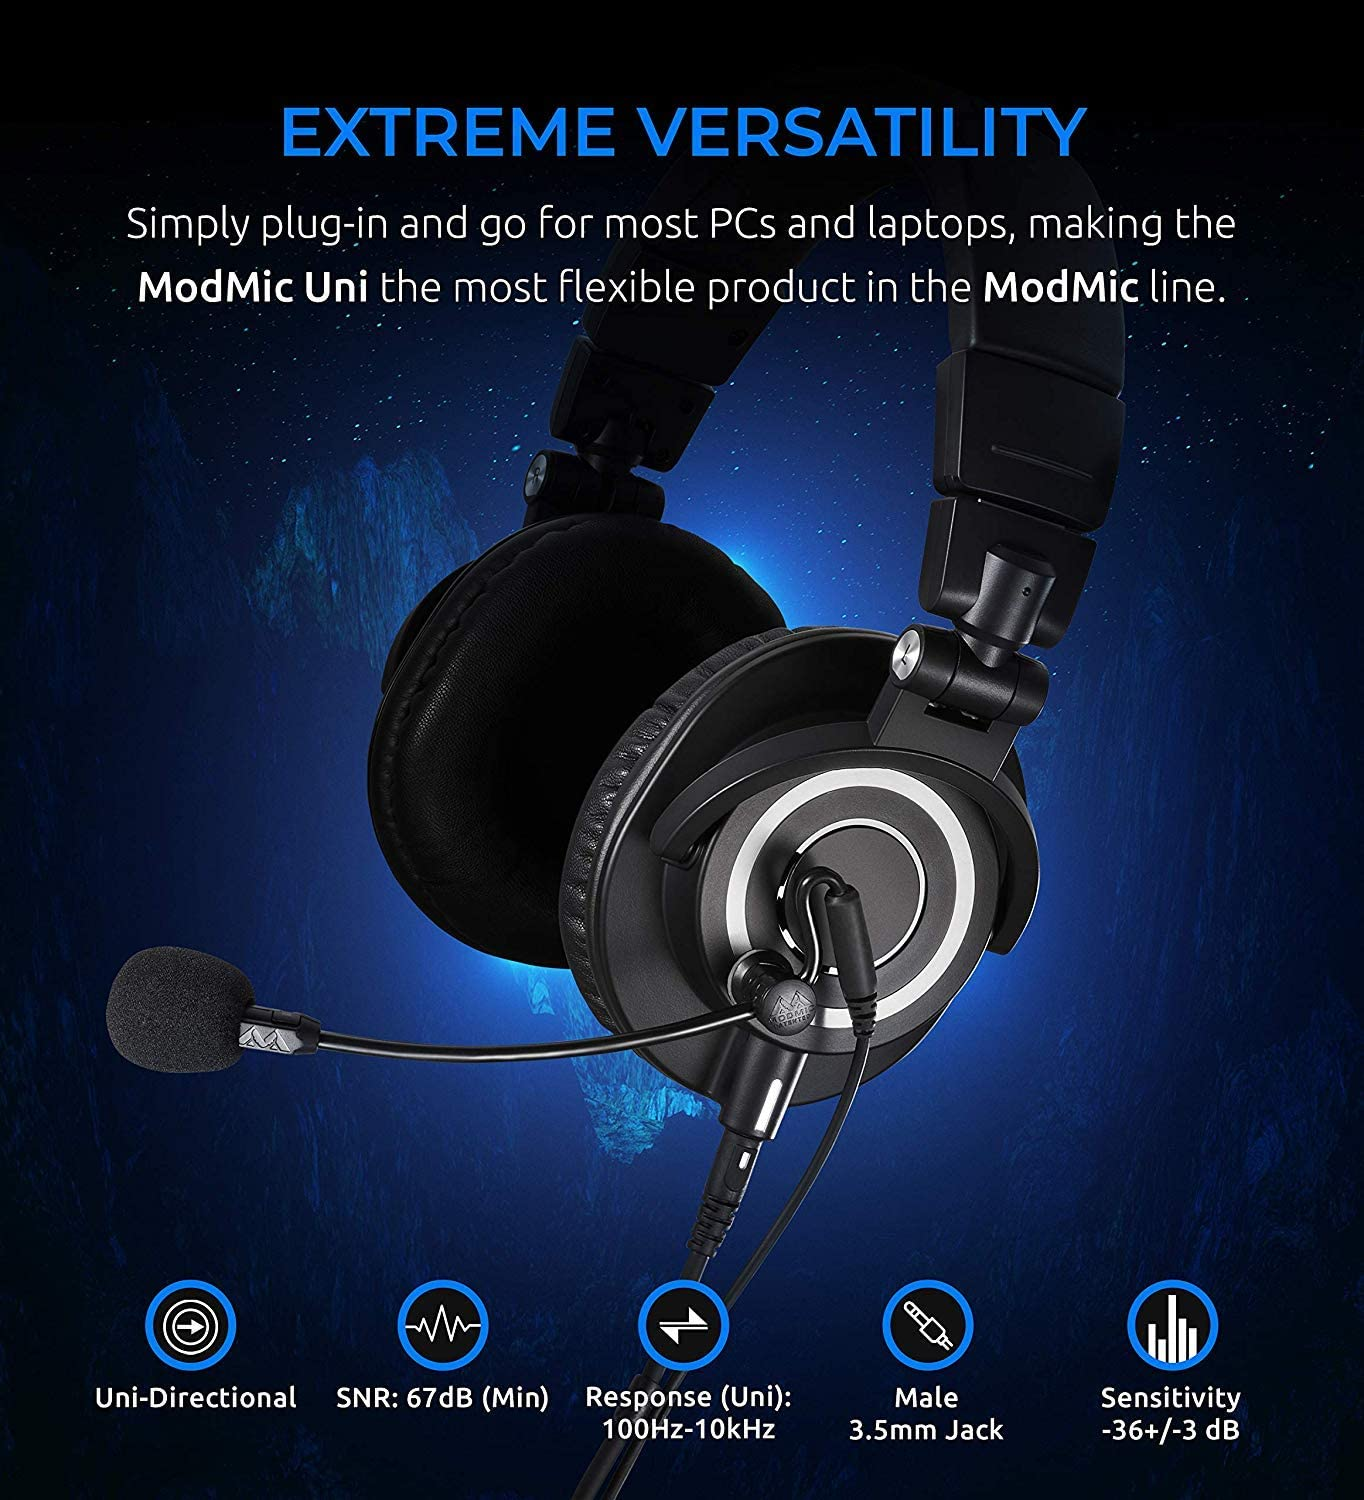 Audio-Technica ATH-M50x Closed-Back Monitor Headphones Mic Black and Blucoil Y Splitter for Audio Bundle with Antlion Audio ModMic Uni with Mute Switch